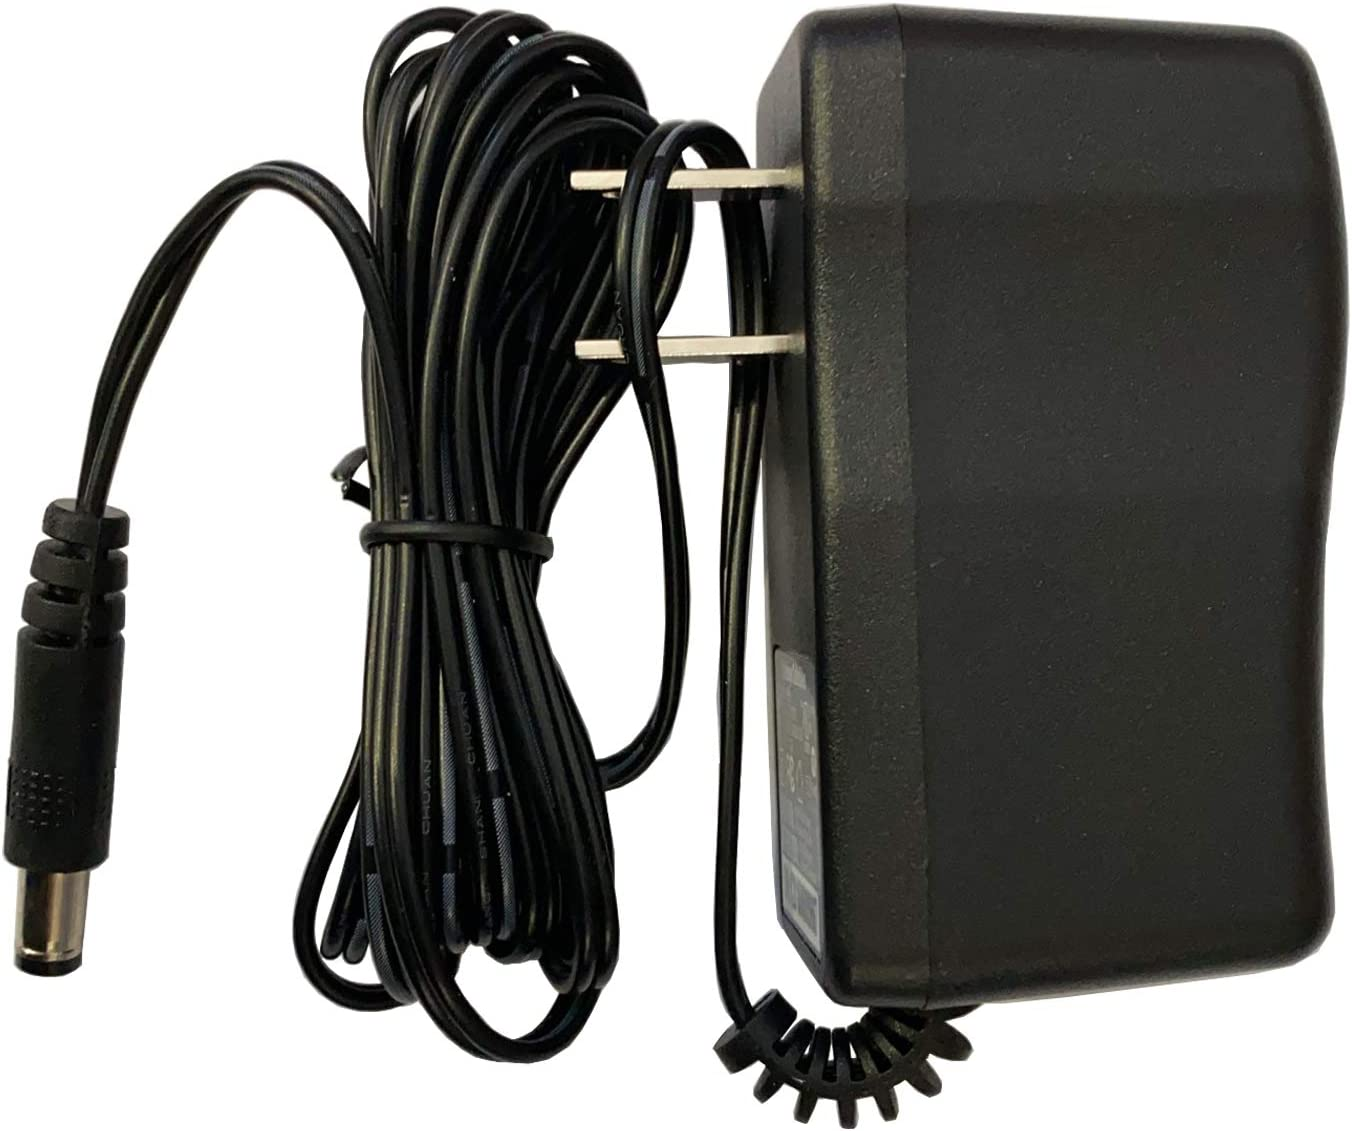 WeGuard 12V 1A AC Adapter for Linksys Cisco Router Workgroup Switch Series; WCG200 WCG200-CA WCG200-CB E2500 EA2700 EA3500 EA4500 EA6500 EG008W EZXS16W RT31P2 RT31P2-AL RT31P2-CA